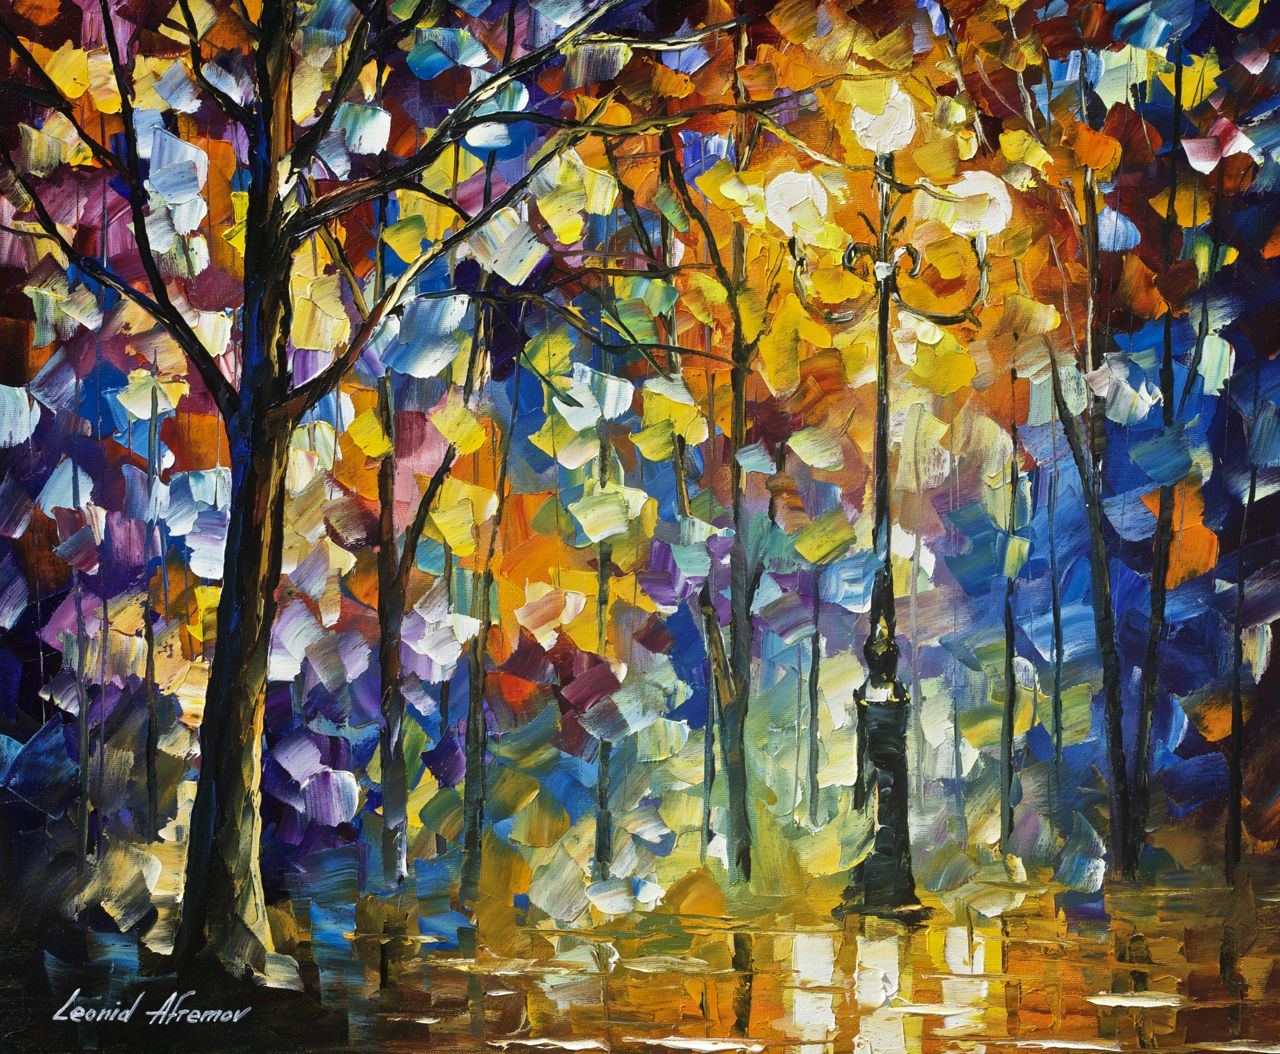 Afremov Pinturas 1 Hour Video Lesson Of Leonid Afremov Painting A Night Landscape In Download Form The Light Of Magic